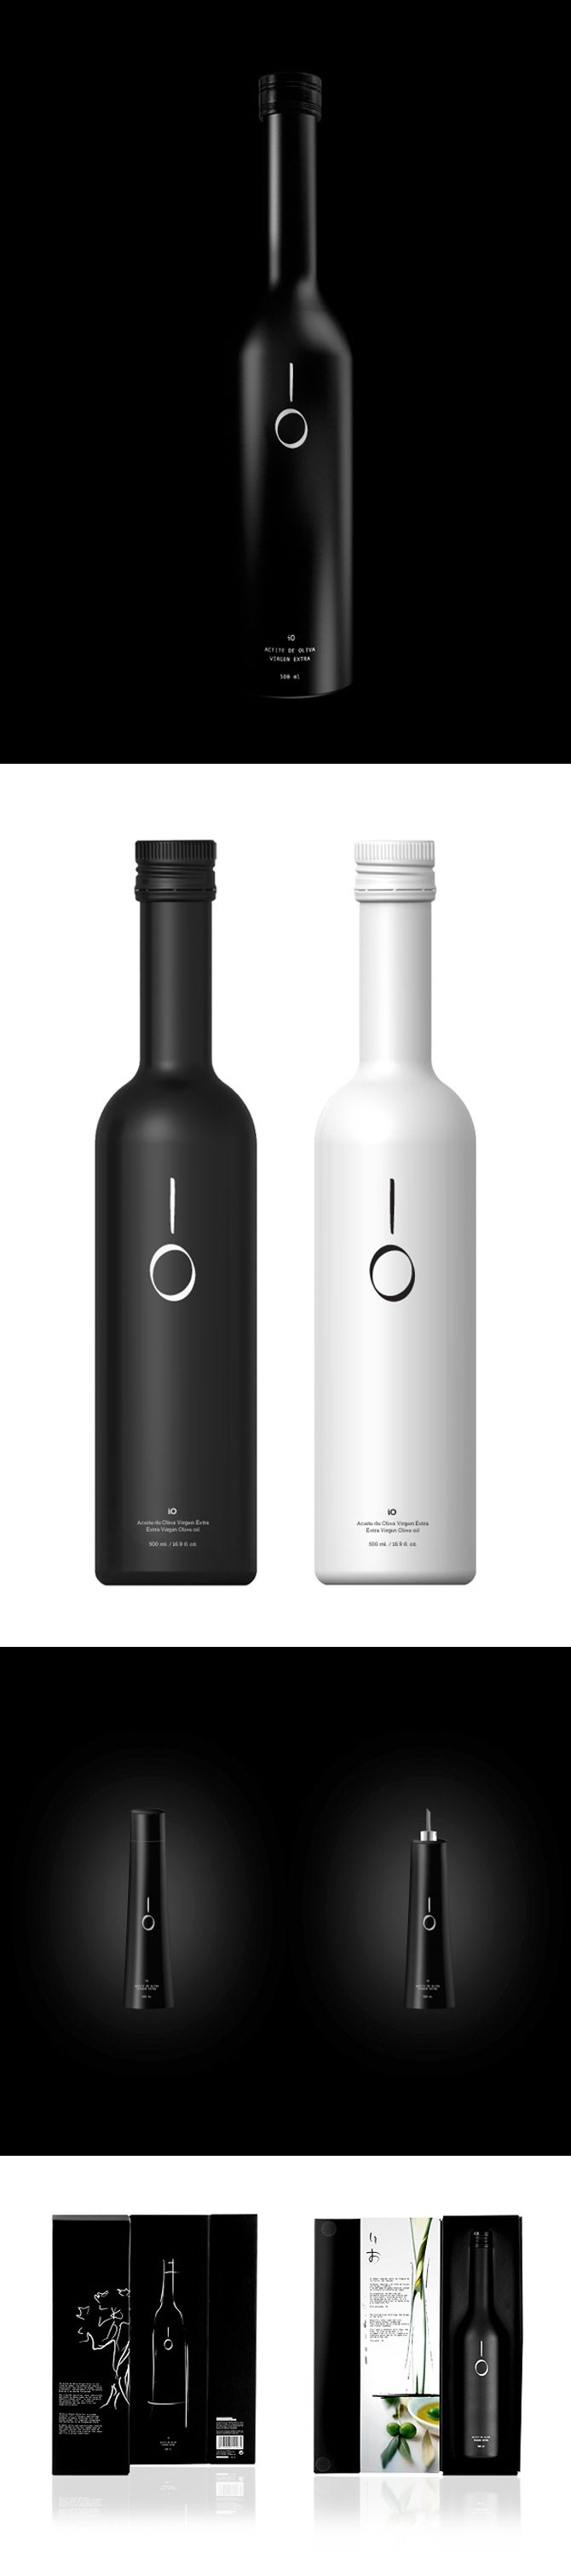 IO Olive oil packaging by The Strategic Concept & Design Brand Studio  http://sbbs.prosite.com/47391/225297/portfolio/io-olive-oil-packaging